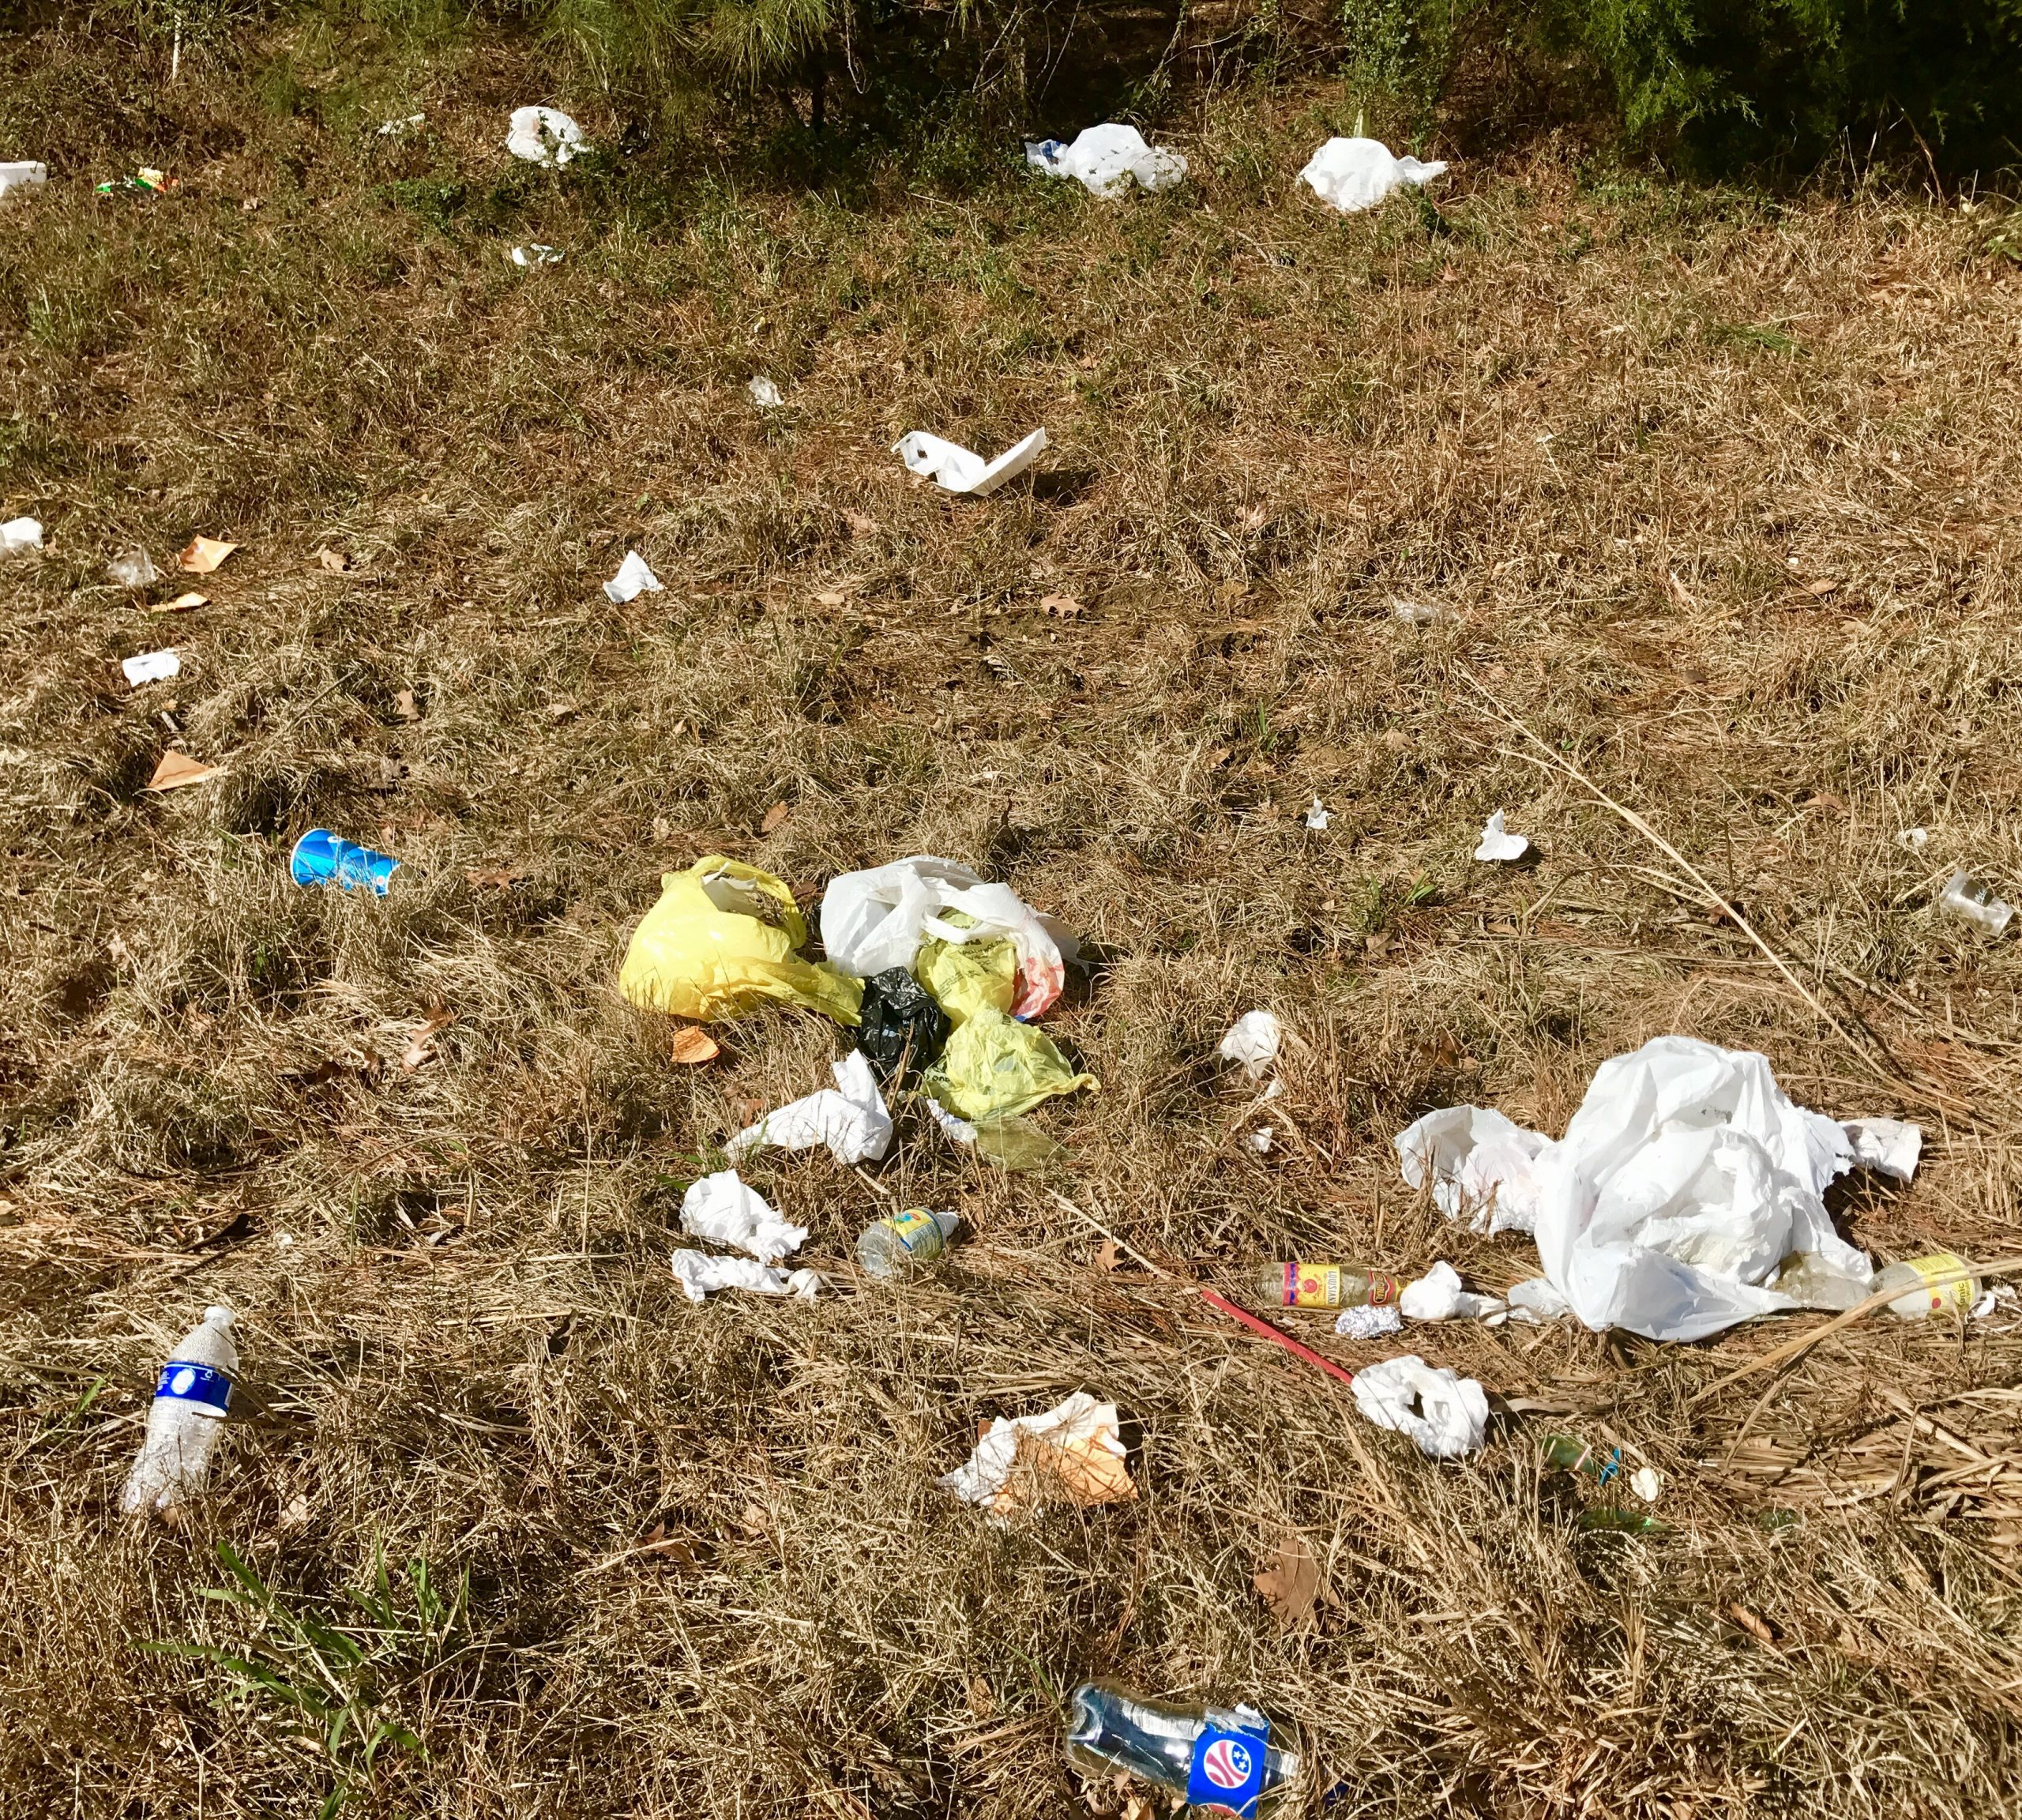 Intimate with Litter